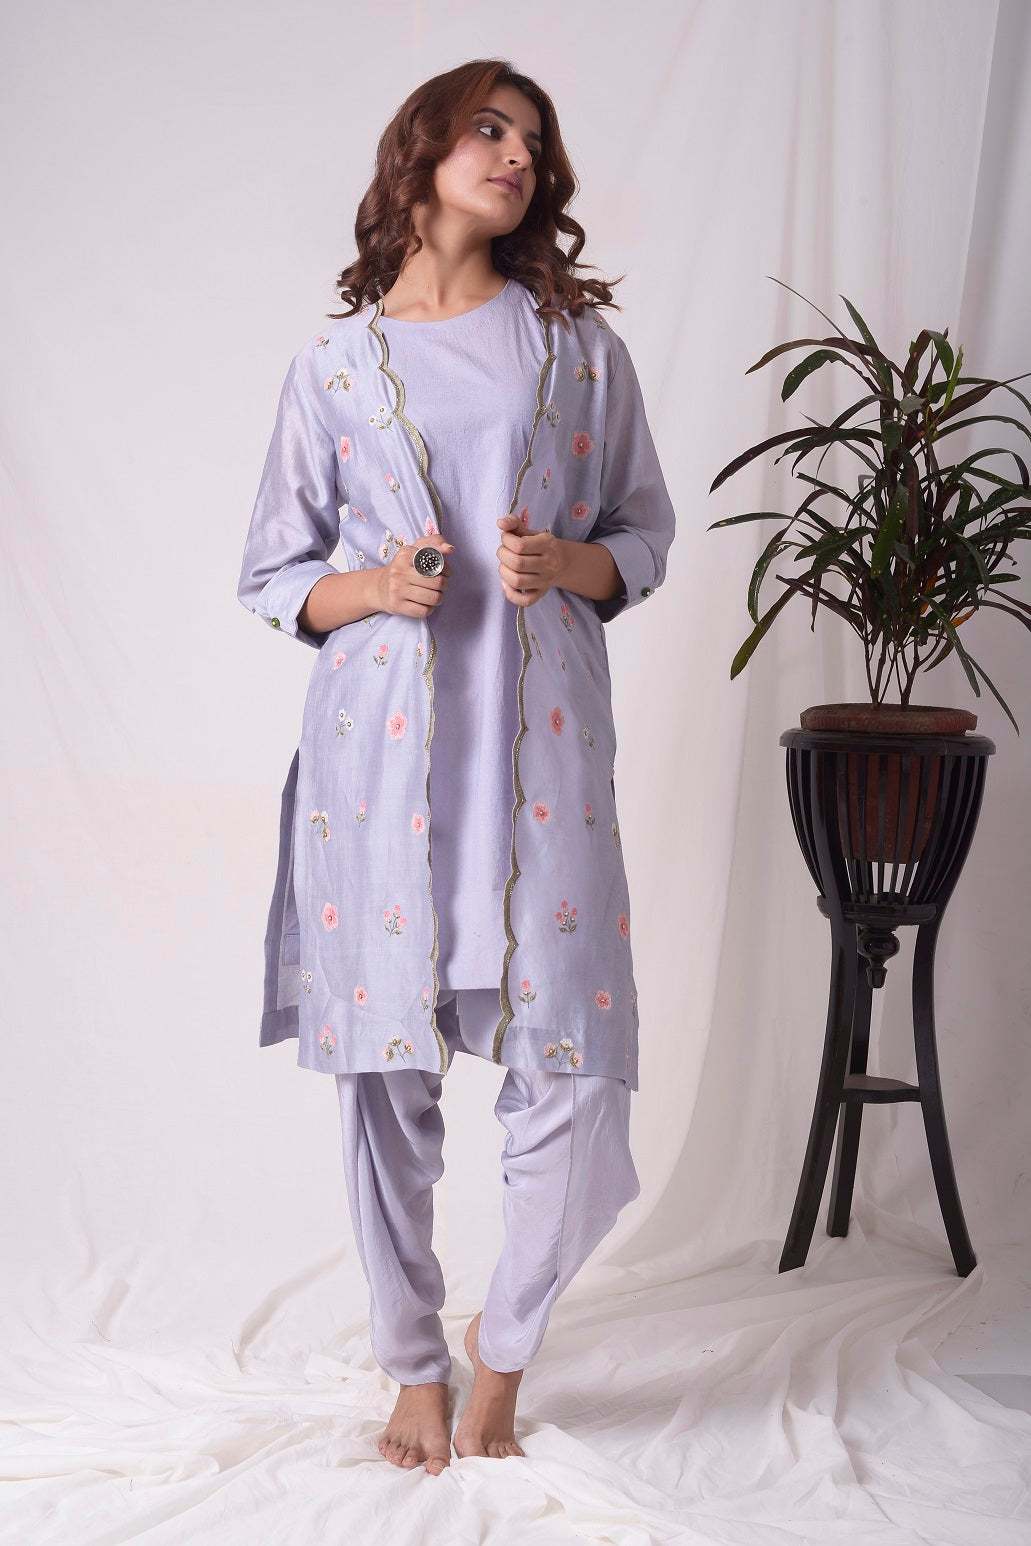 Greyish Purple Chanderi Suit With Jacket And Dhoti Online in USA-full view-4